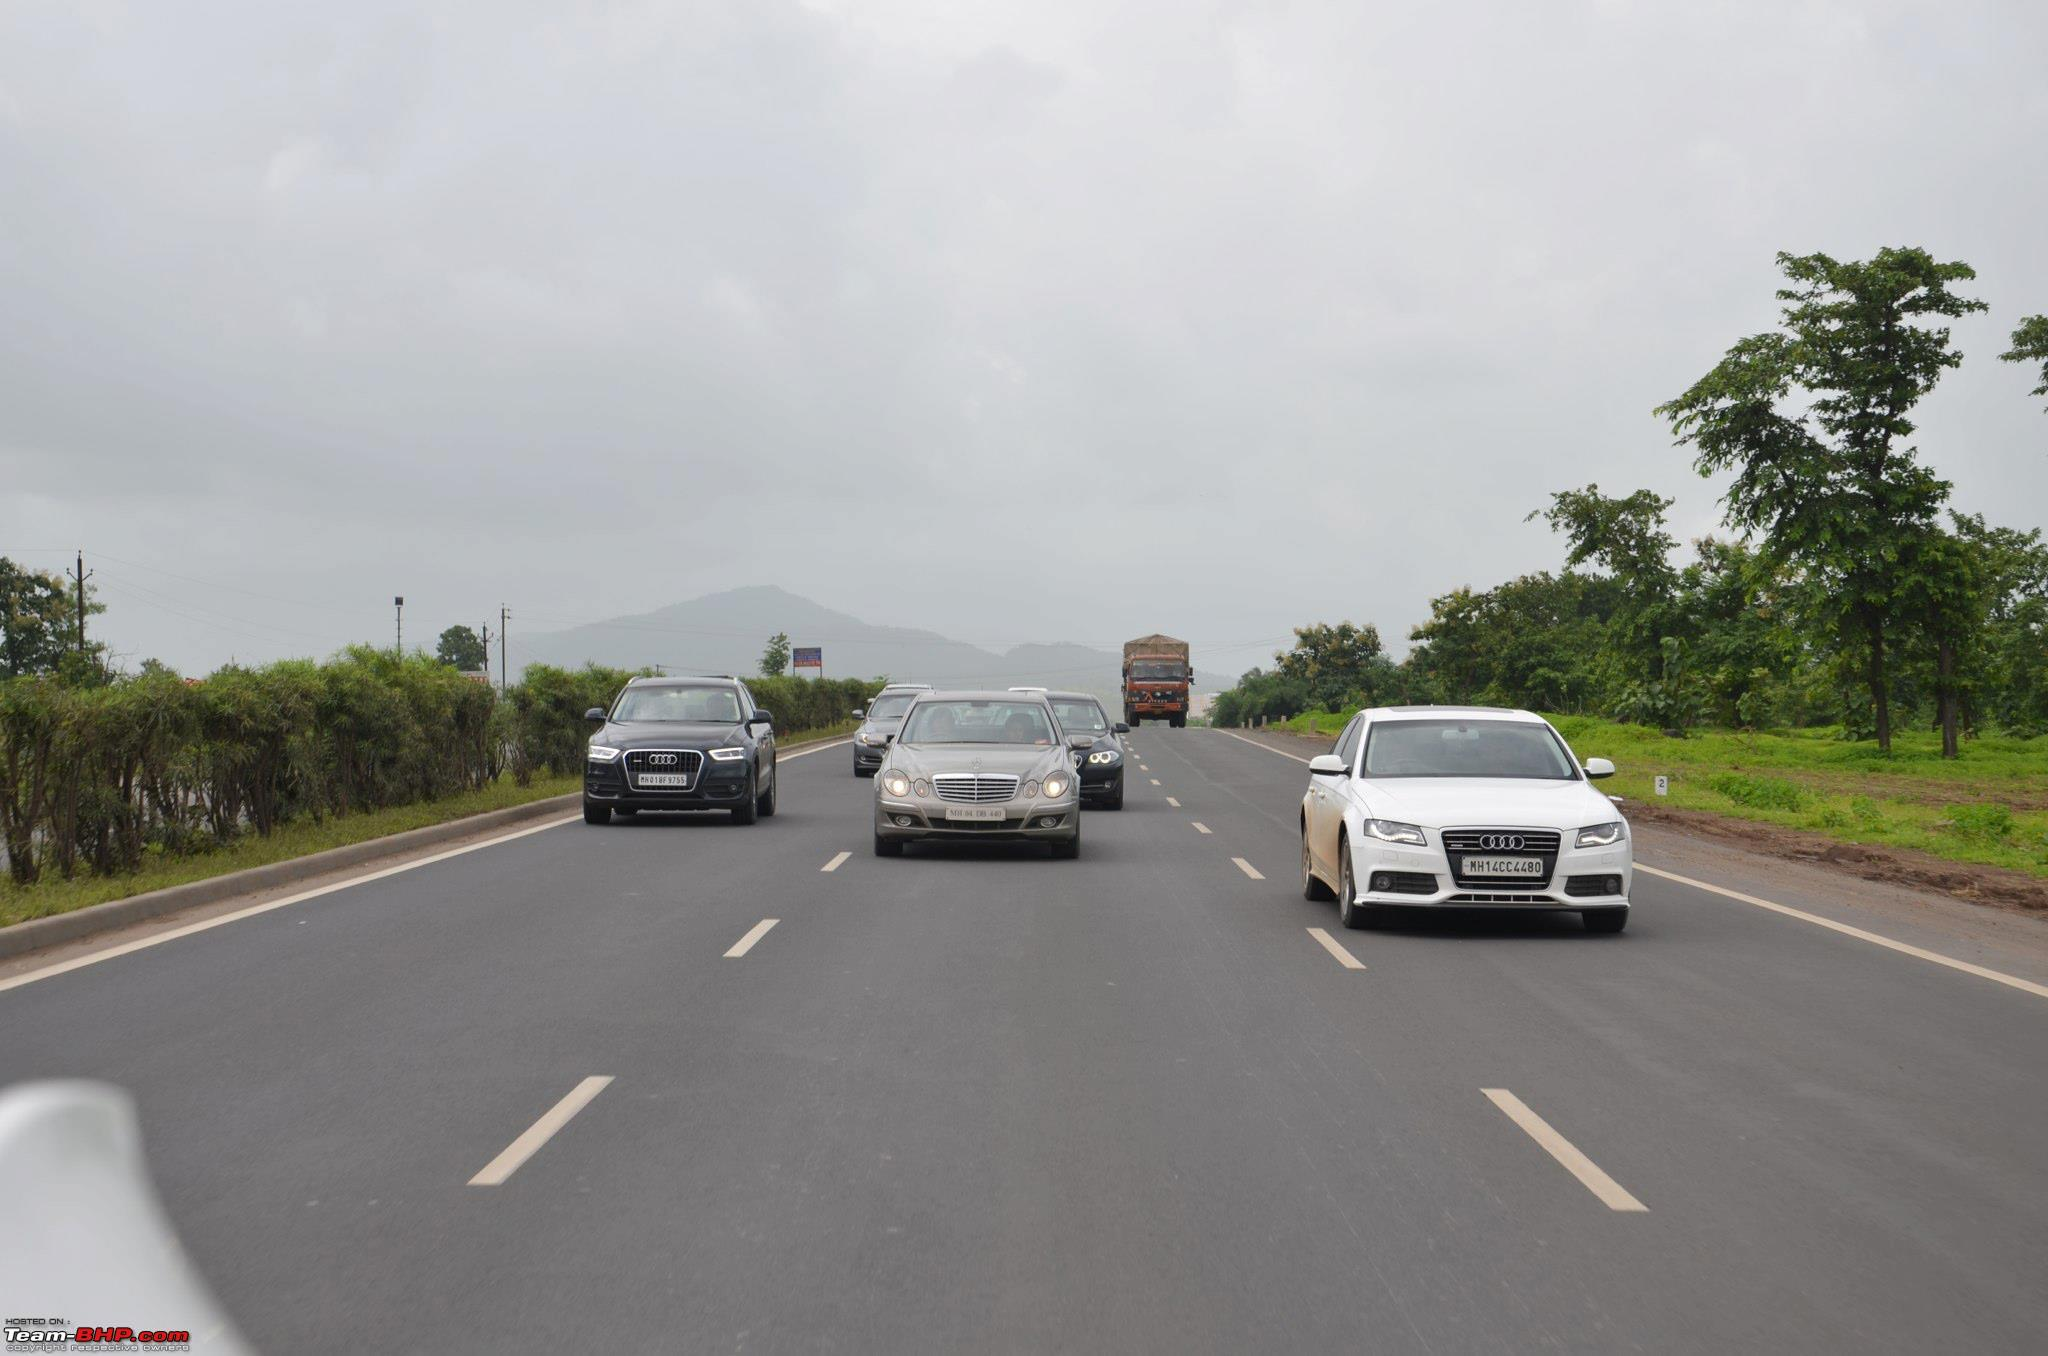 Mumbai to Nashik Cabs Highway